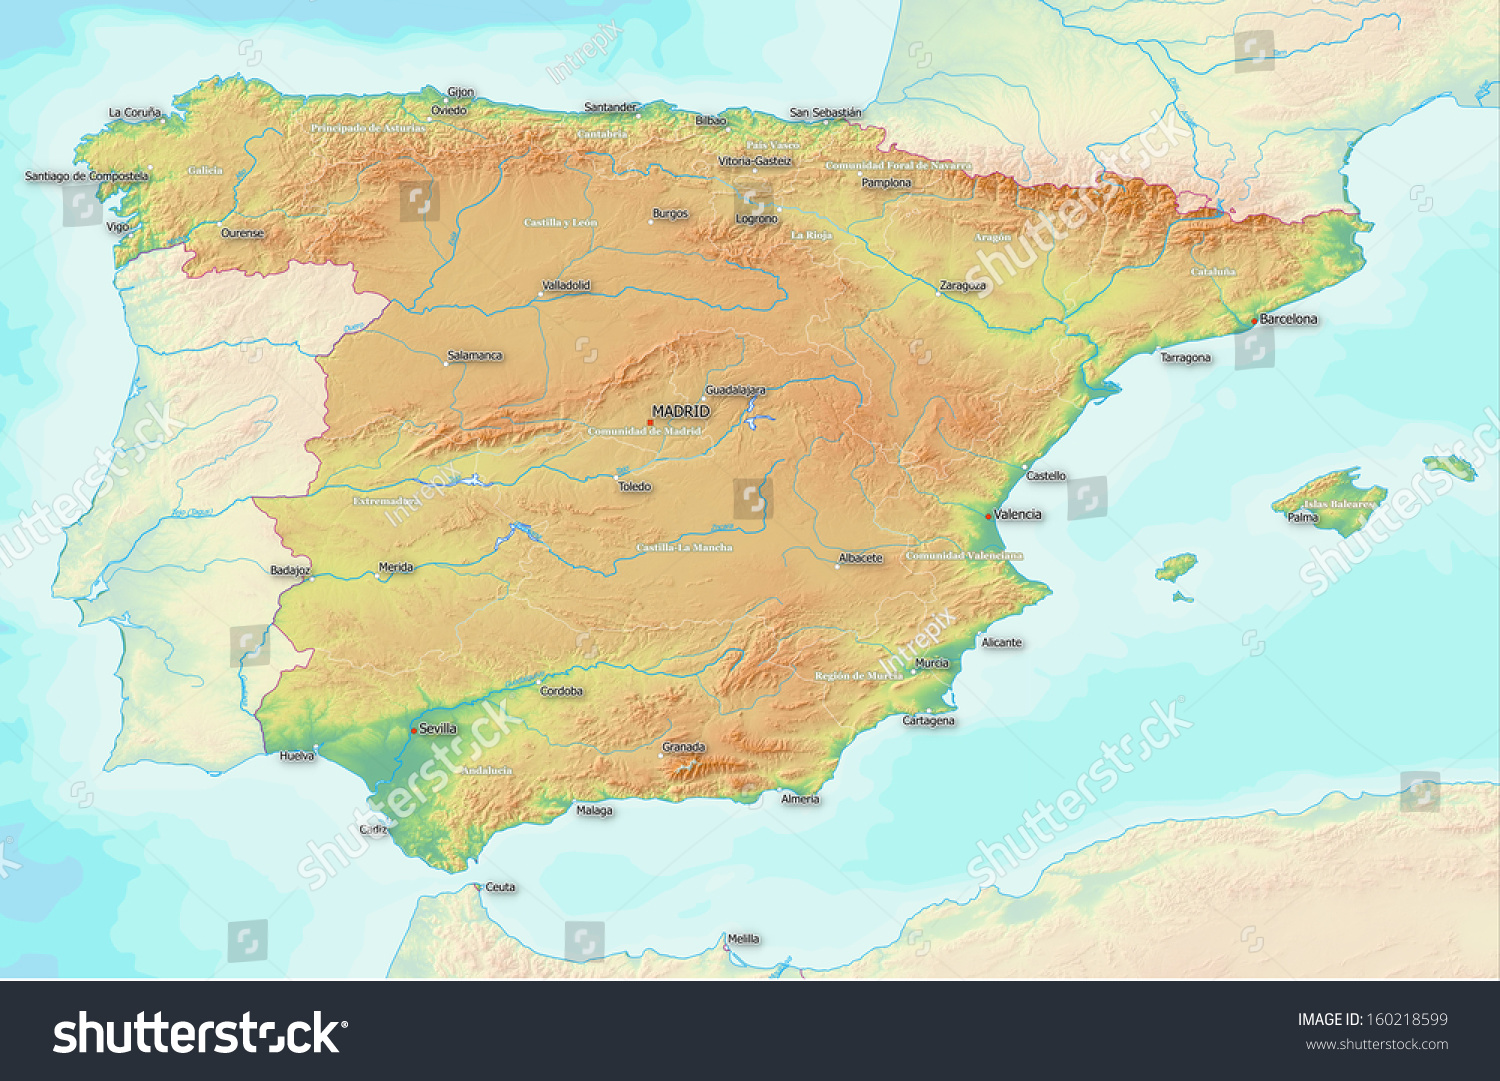 Full Map Of Spain.Map Showing Topography Spain Largest Towns Stock Illustration 160218599